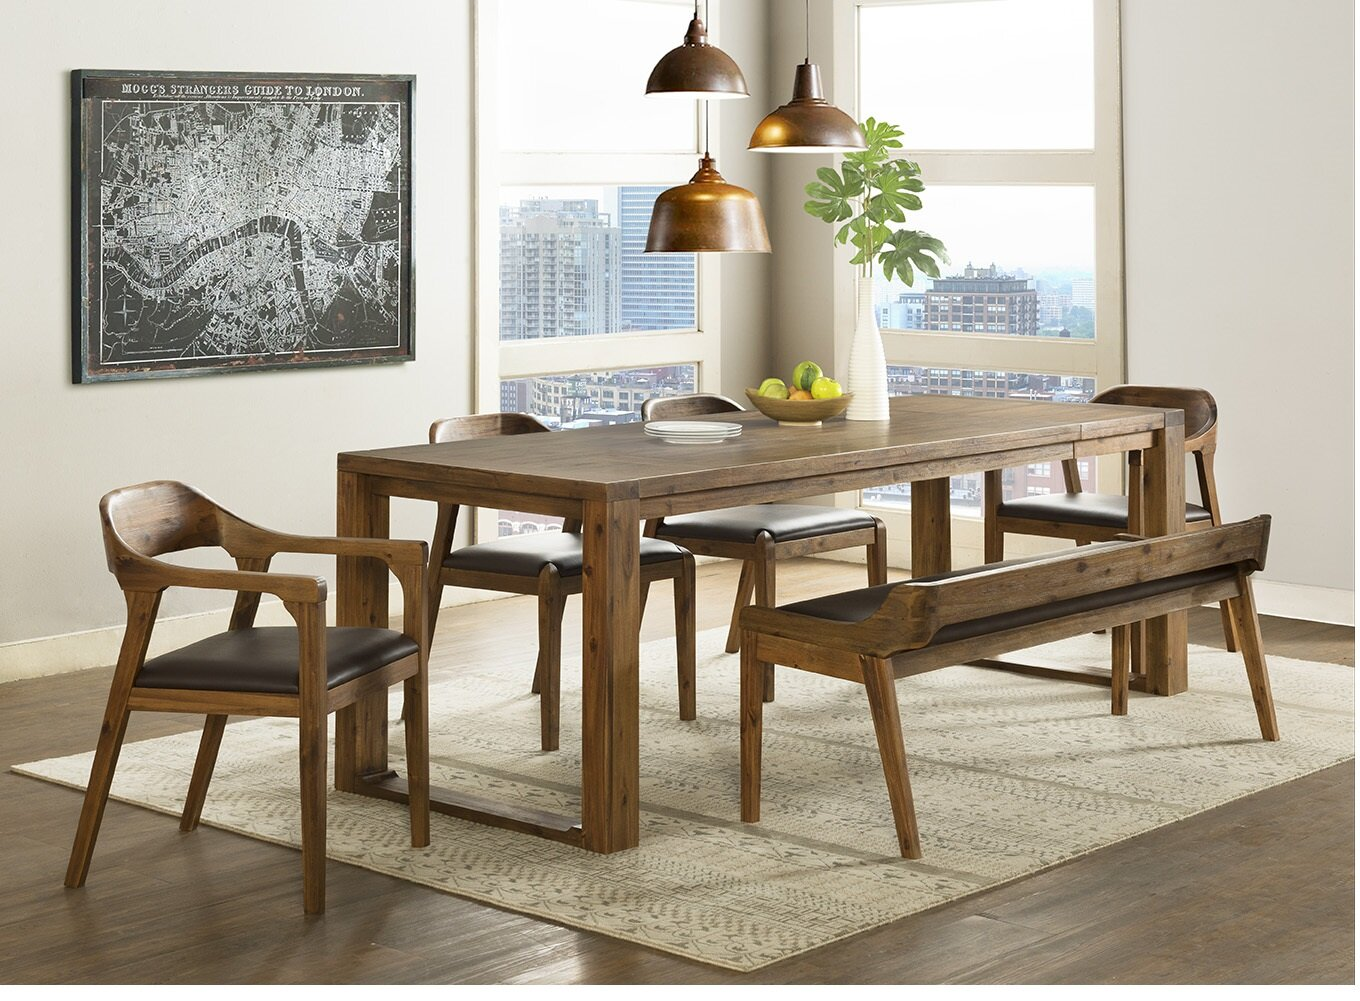 Foundry Select Bourgoin 6 Piece Drop Leaf Solid Wood Dining Set Reviews Wayfair